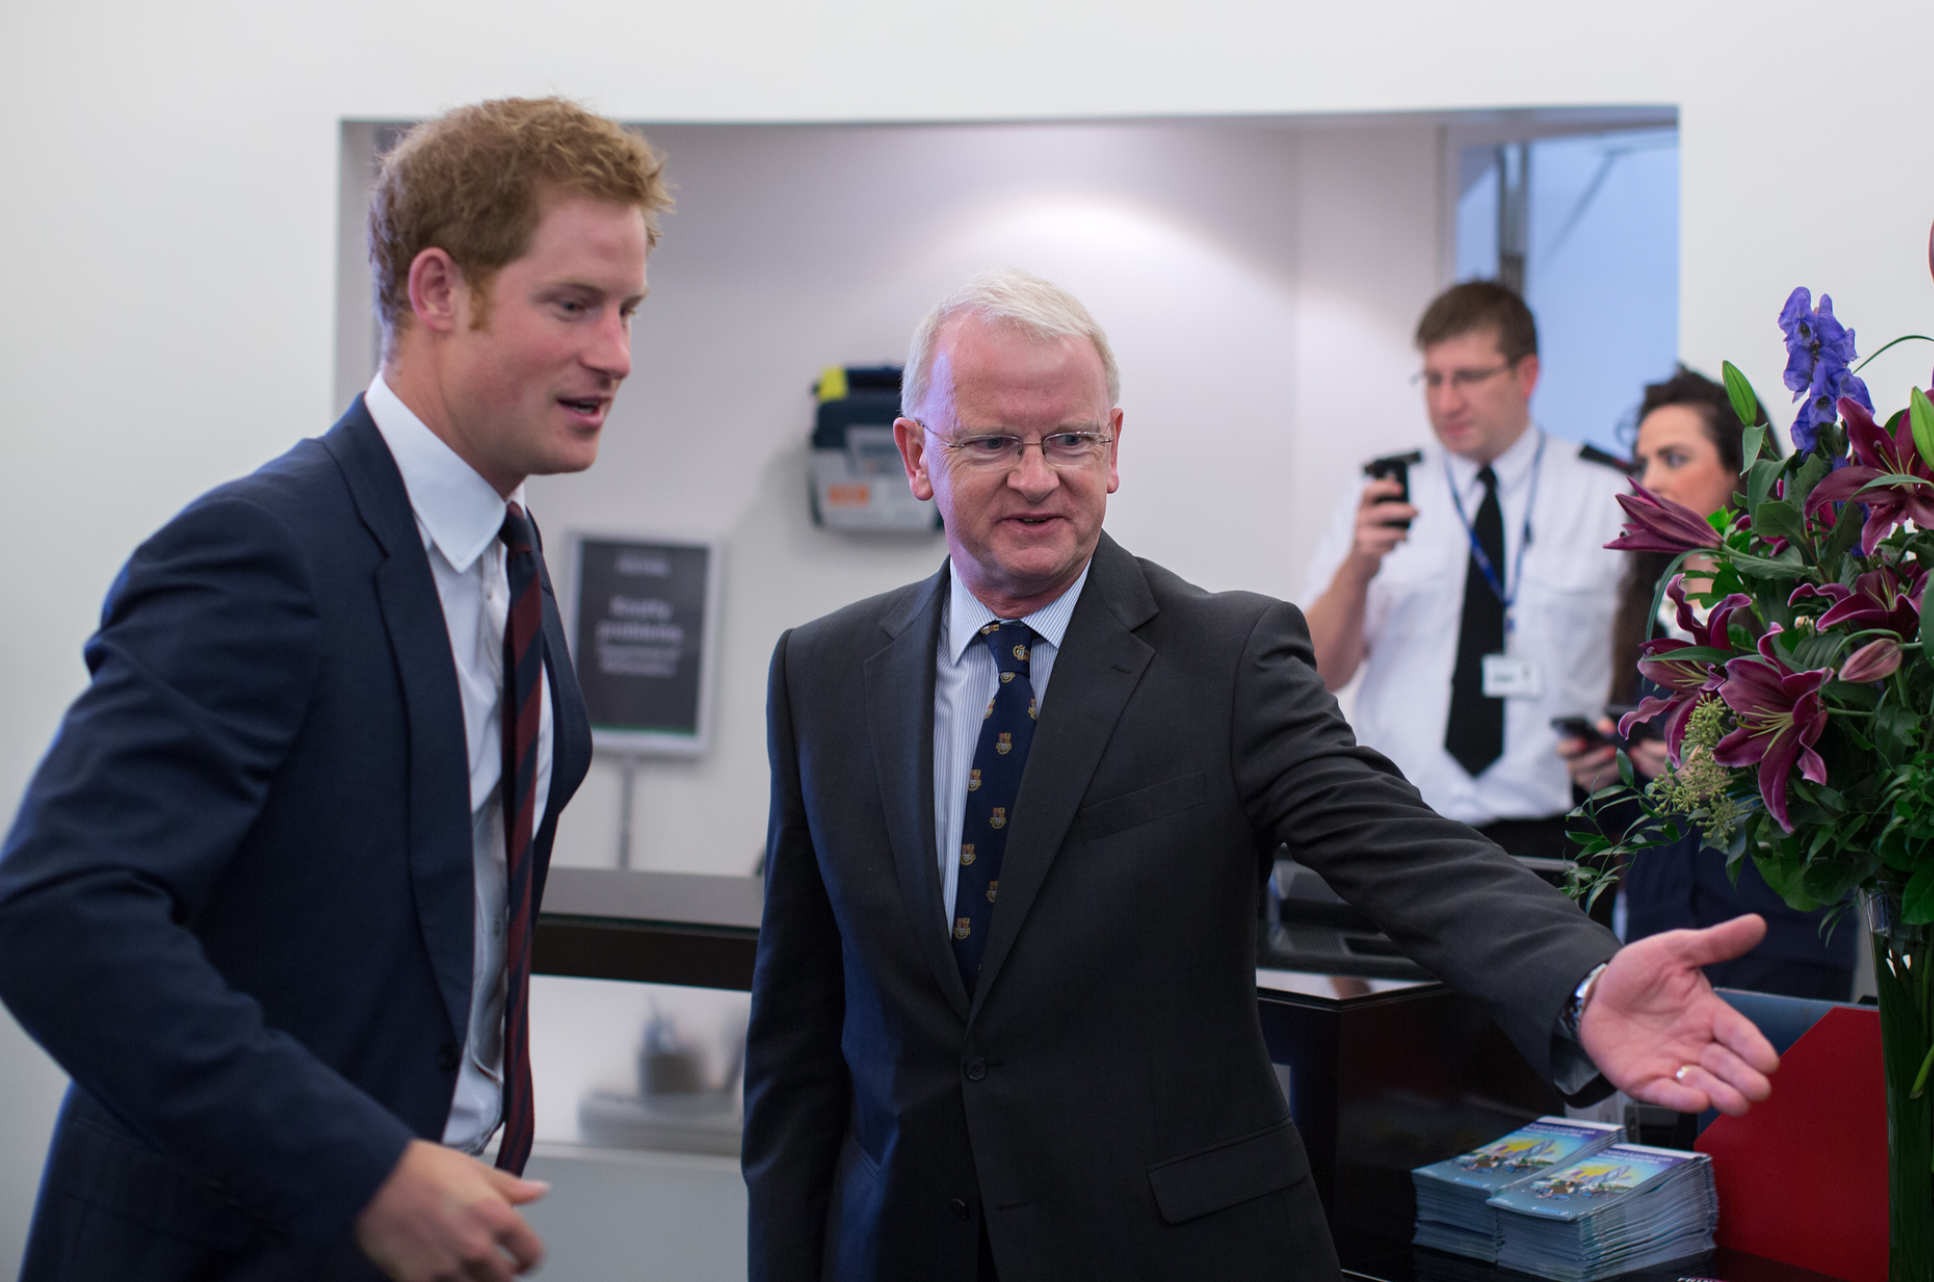 Discussing blast injury research with Prince Harry